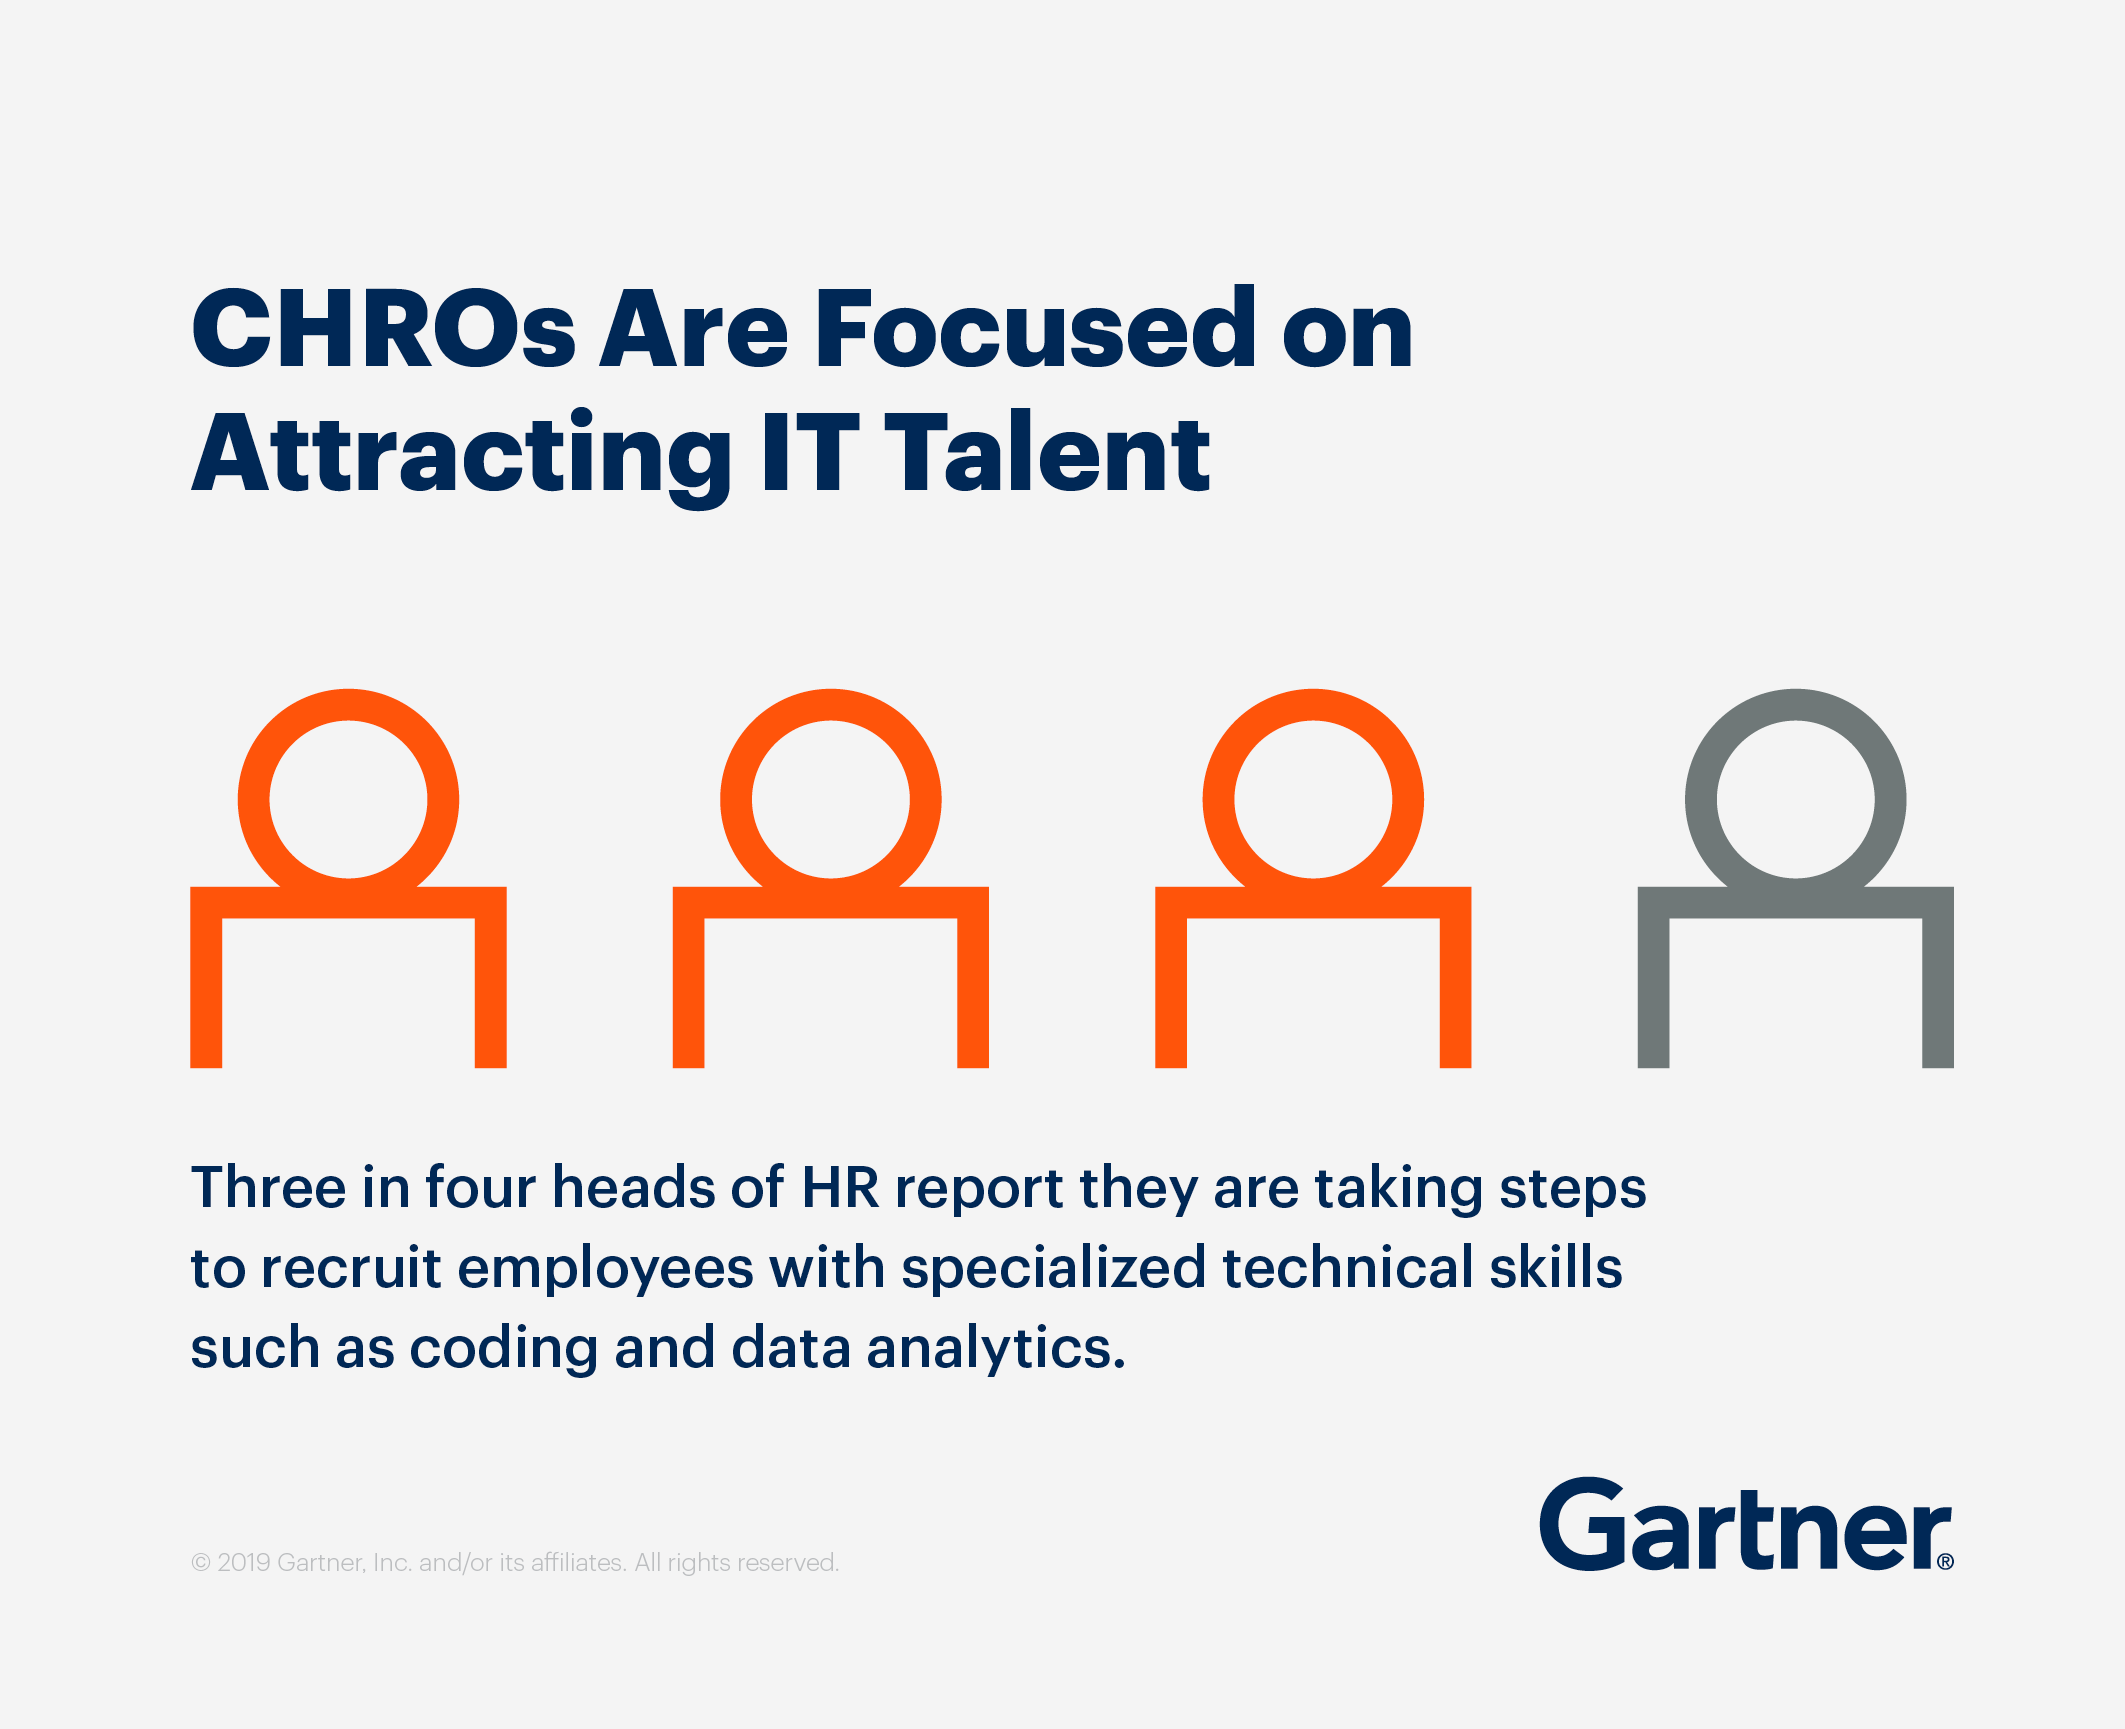 CHROs are focused on attracting IT talent. Three in four heads of HR report they are taking steps to recruit employees with specialized technical skills such as coding and data analytics.